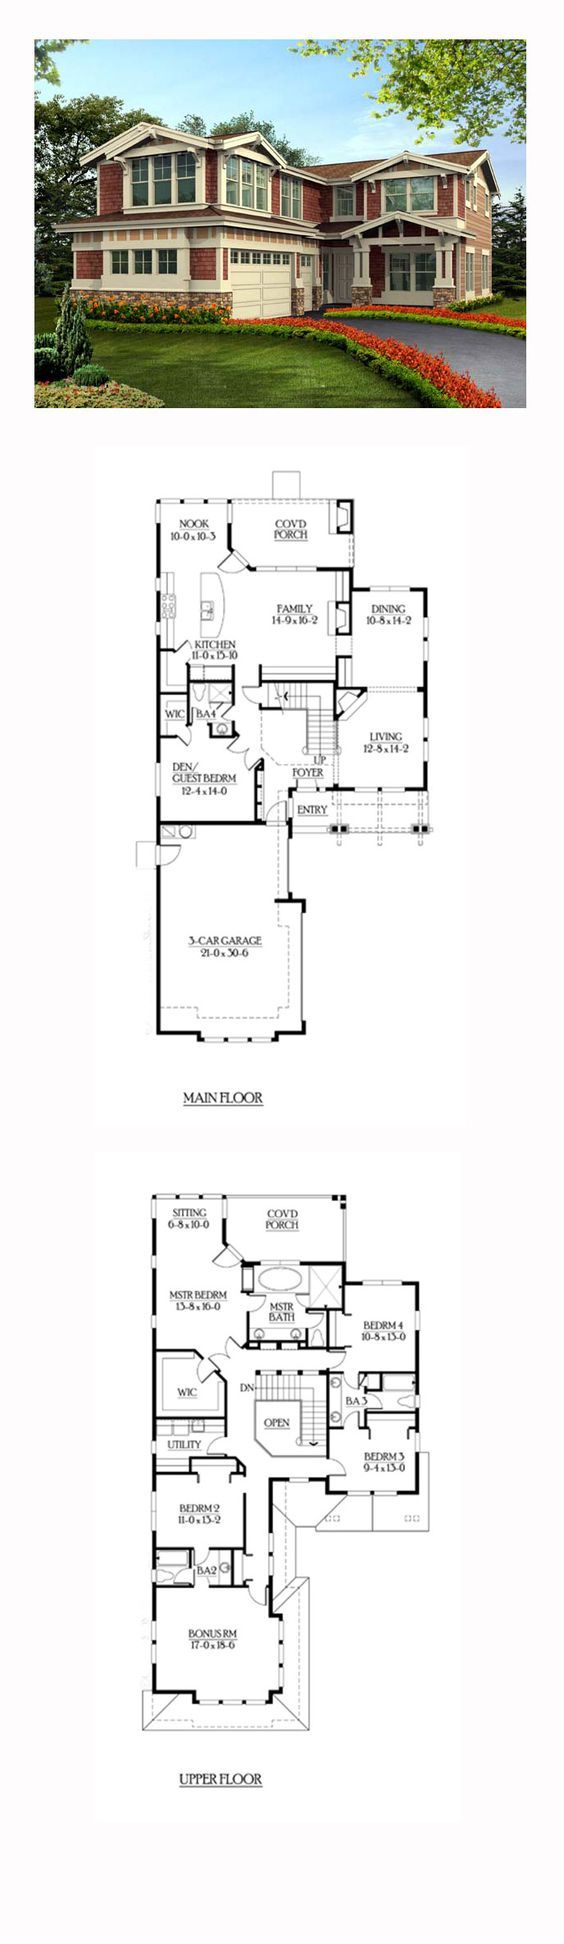 5 bedroom 3 bathroom house plans - 25 Best Cool House Plans Ideas On Pinterest House Layout Plans Cottage Home Plans And Home Blueprints